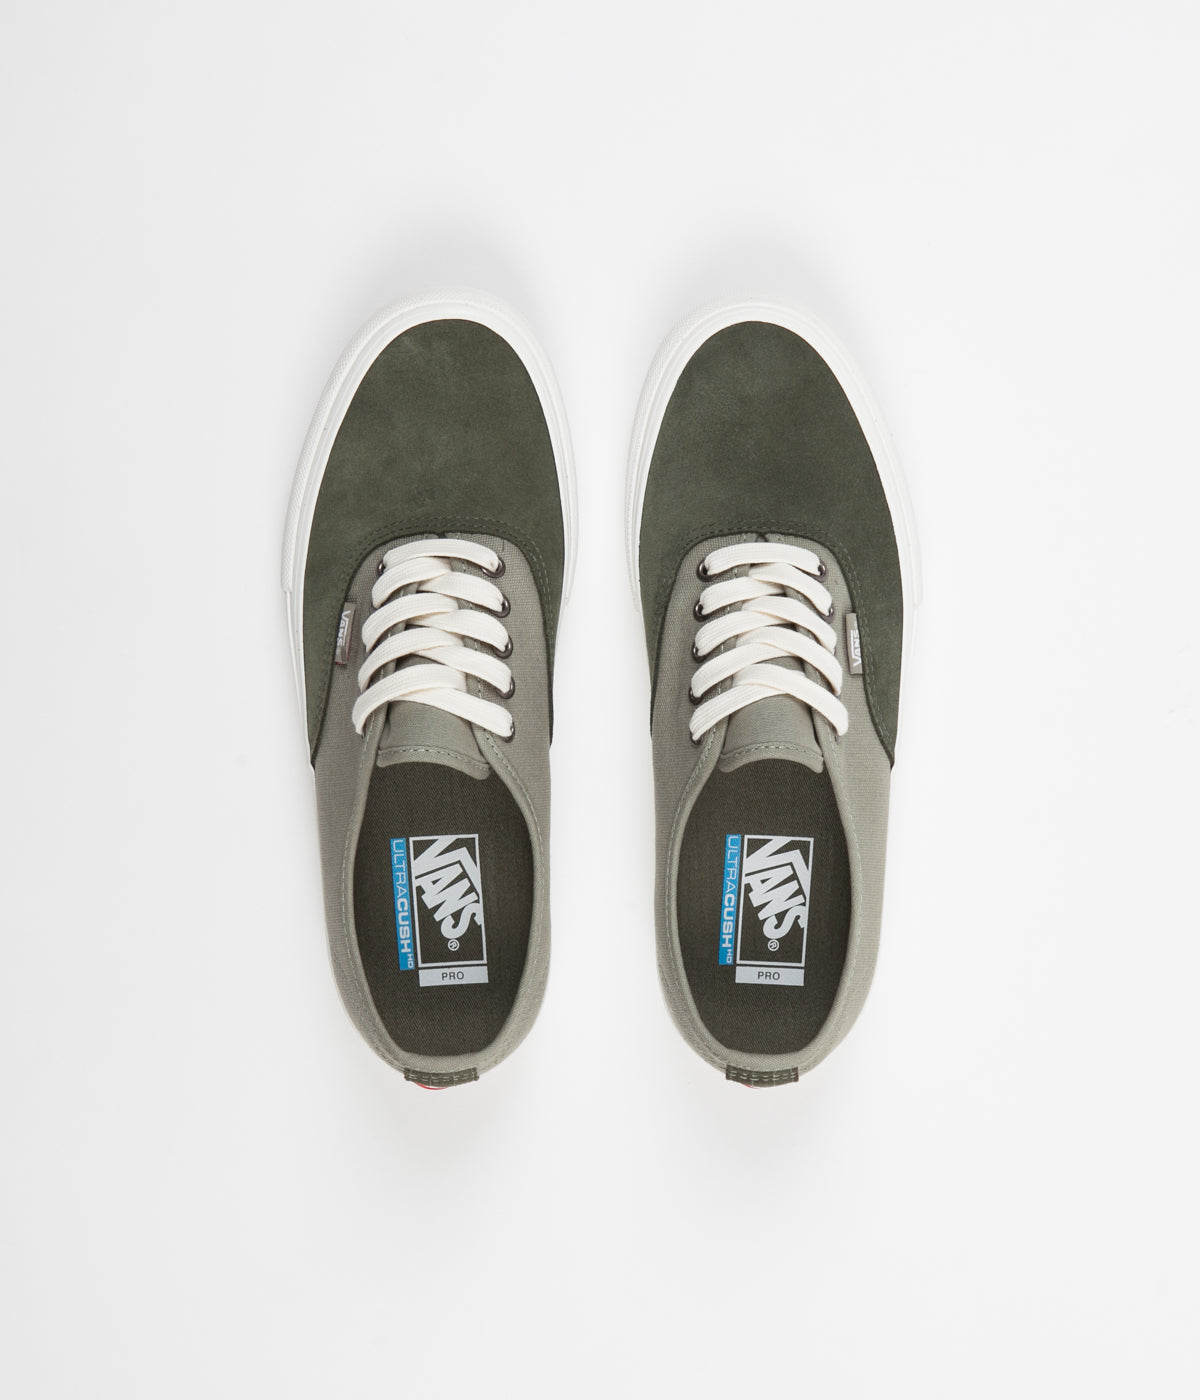 Vans Authentic Pro Shoes - Grape Leaf / Laurel Oak